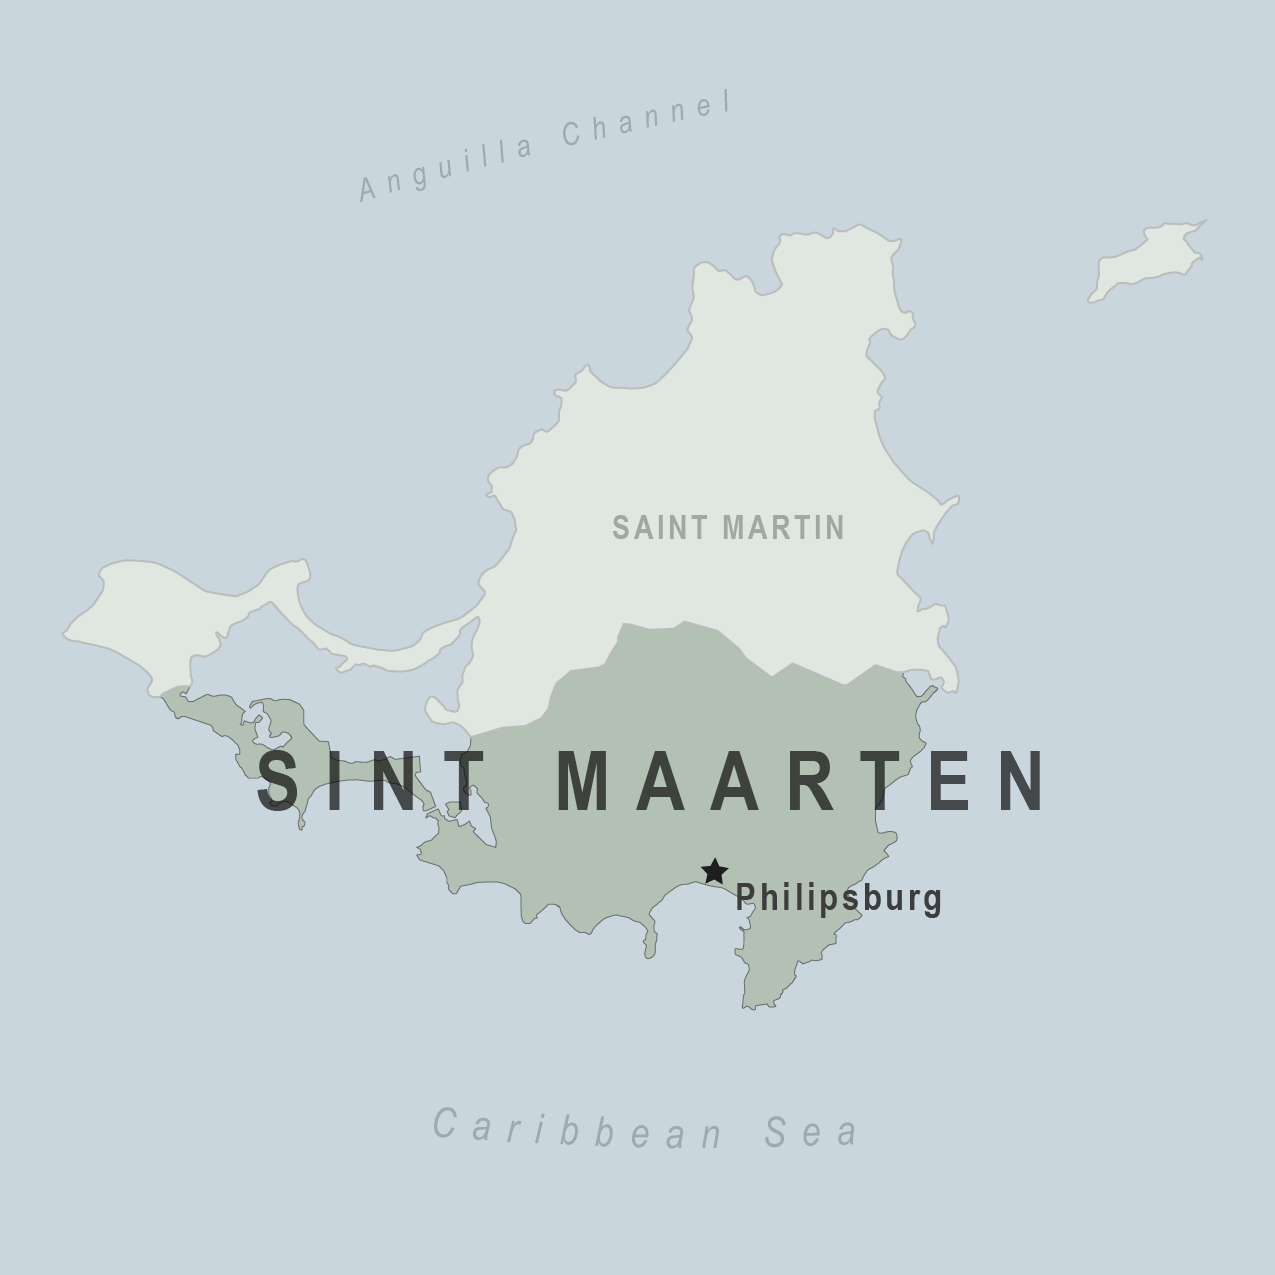 where is st maarten located in the world